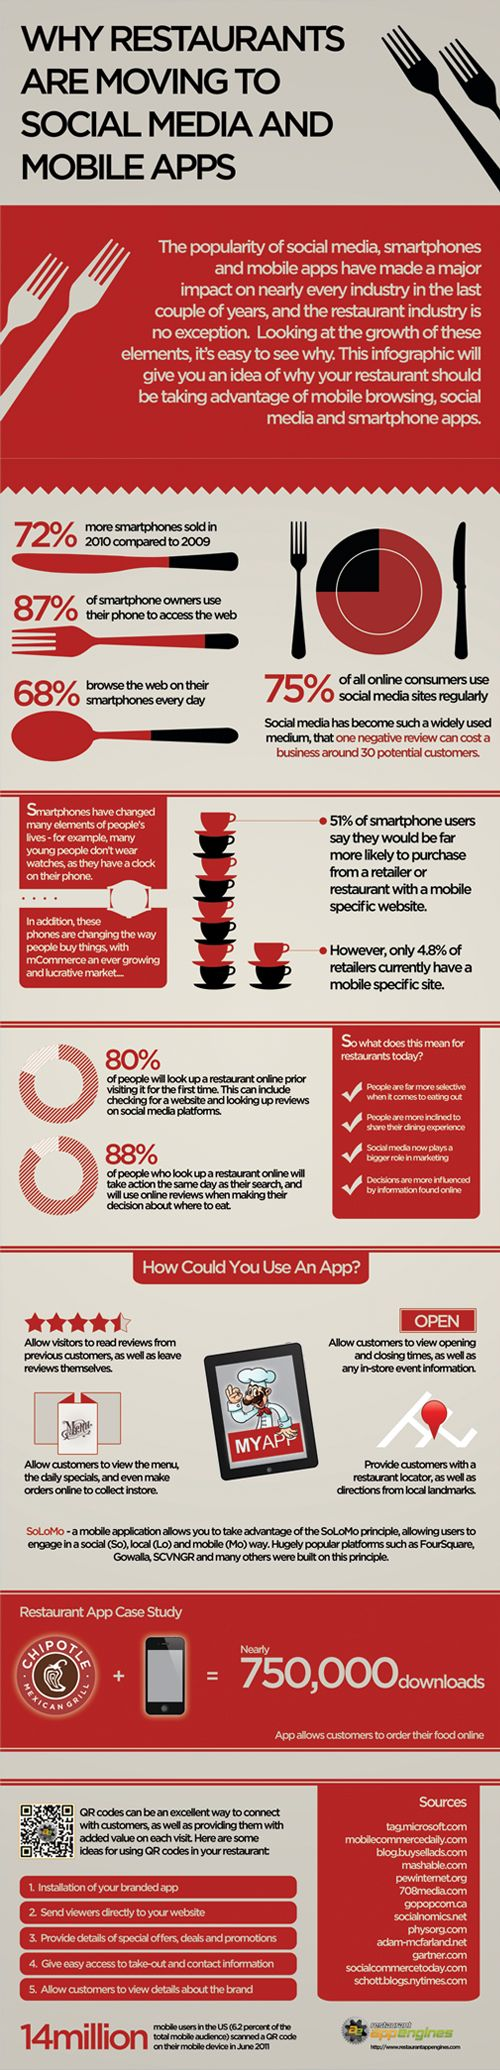 An infographic looking at why more and more restaurants are moving towards social media and mobile applications.